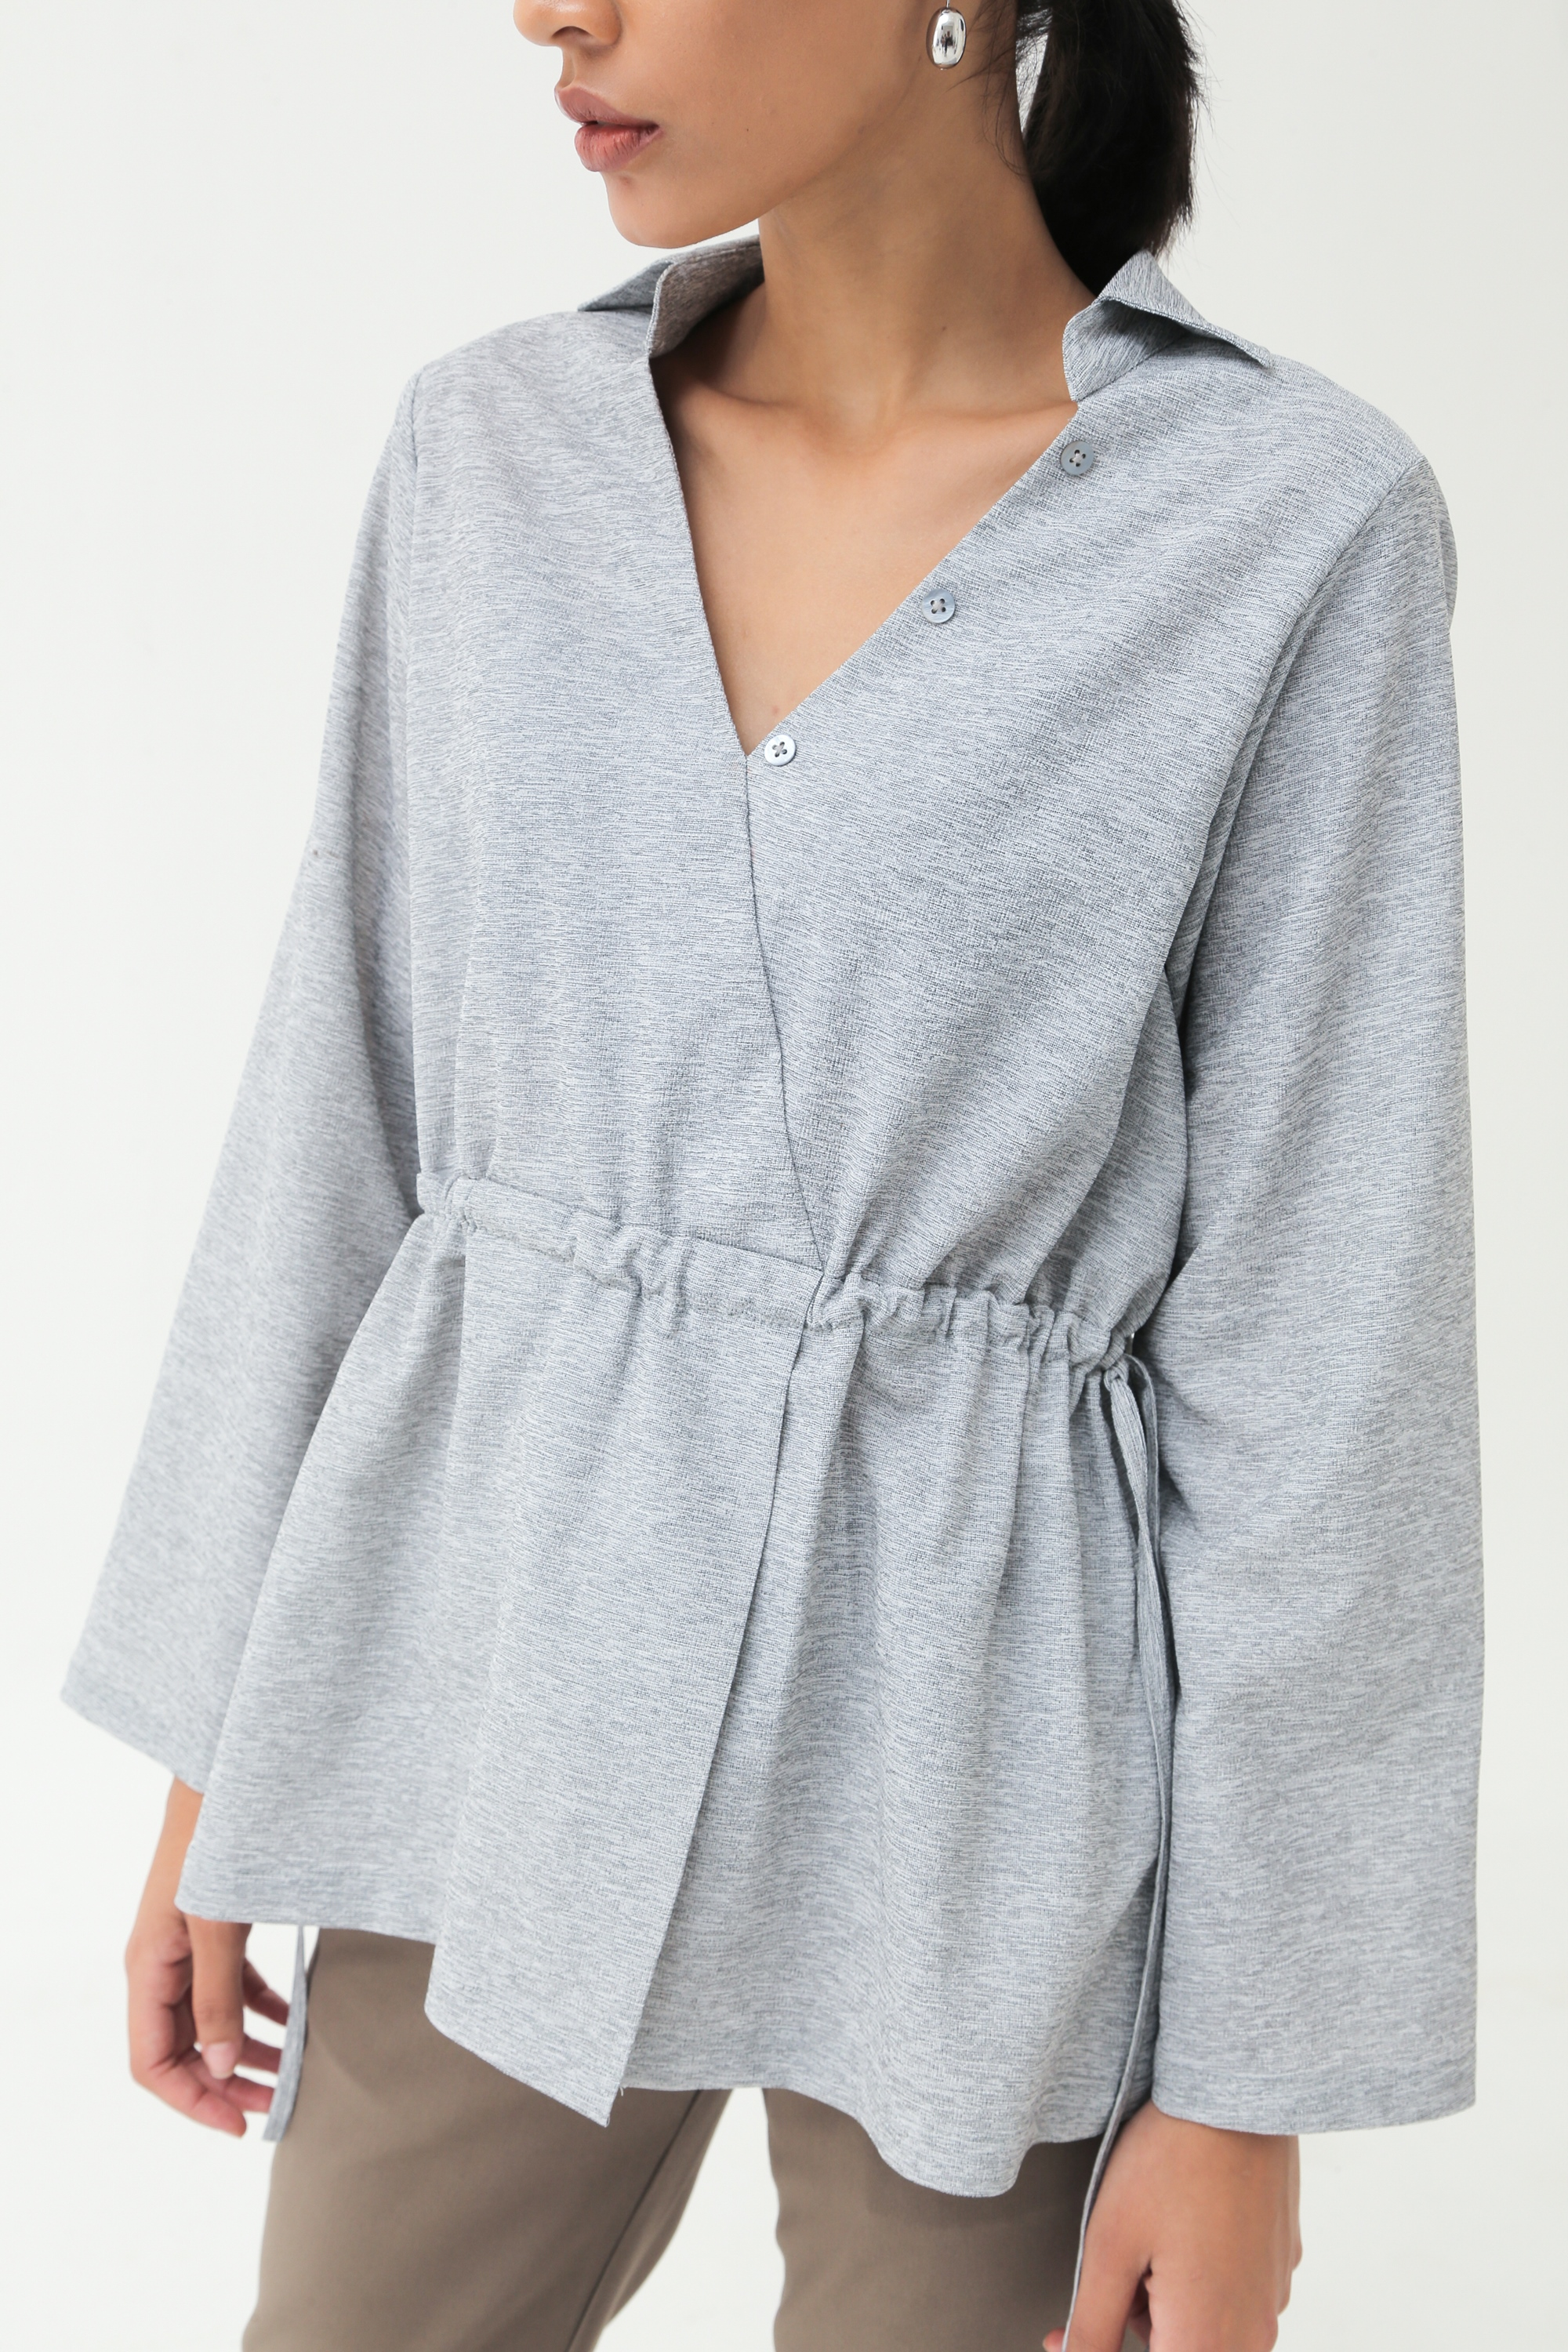 Picture of GIULIA BLOUSE GREY WOLLY